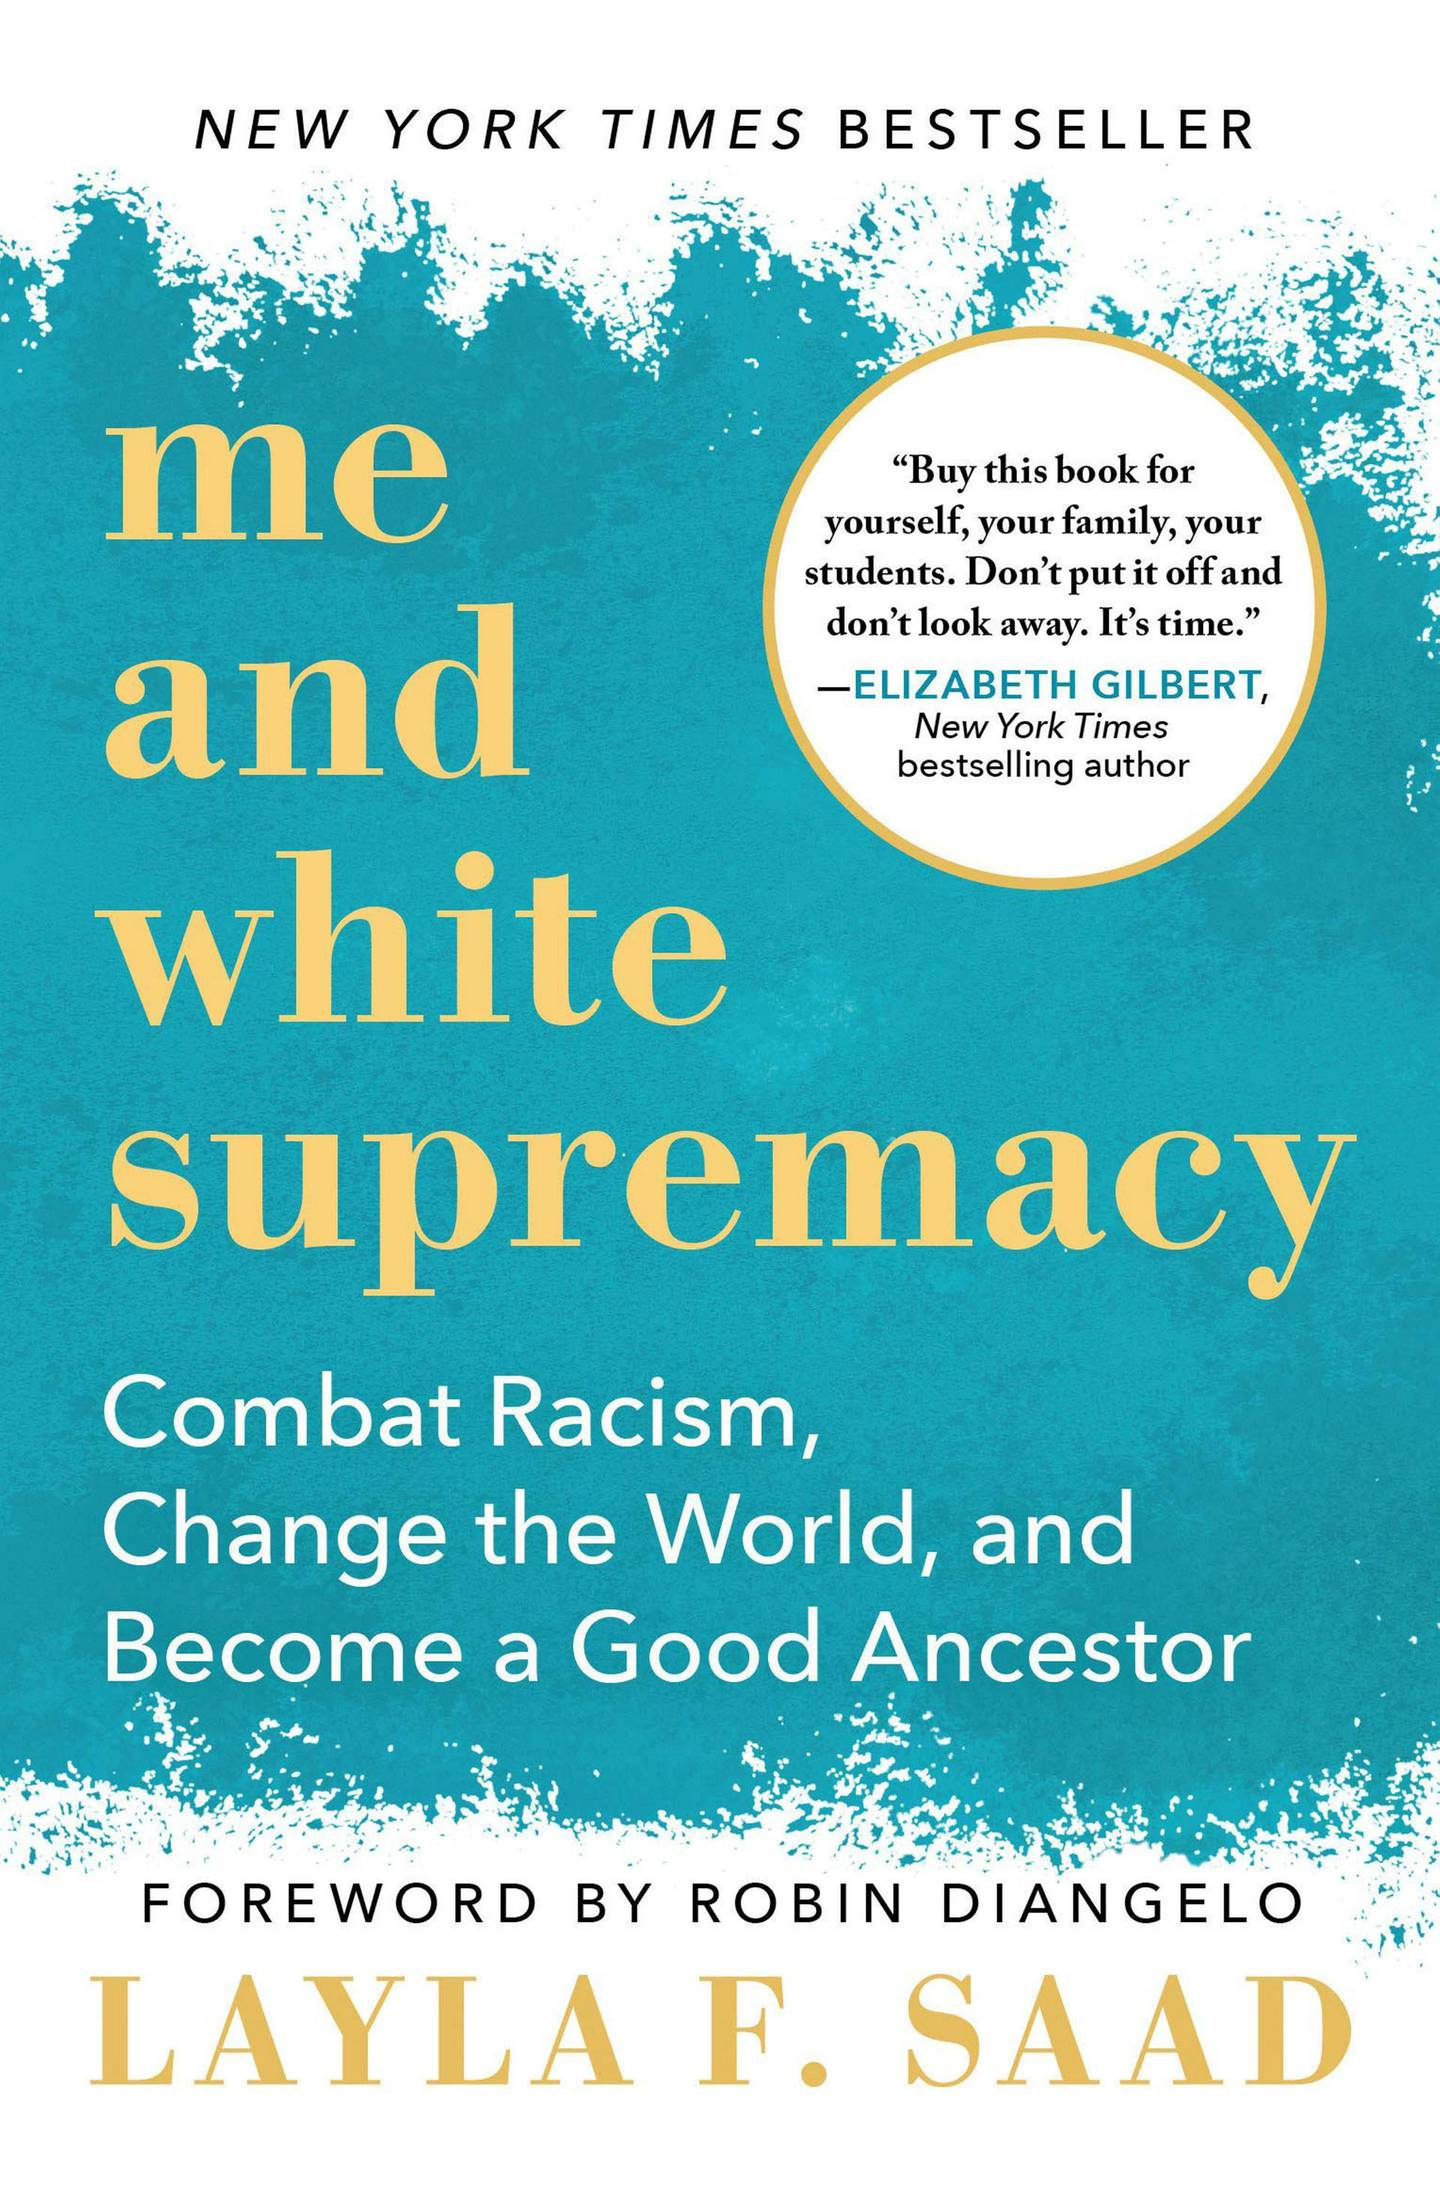 Me and White Supremacy: Combat Racism, Change the World, and Become a Good Ancestor by Layla Saad. Courtesy Sourcebooks